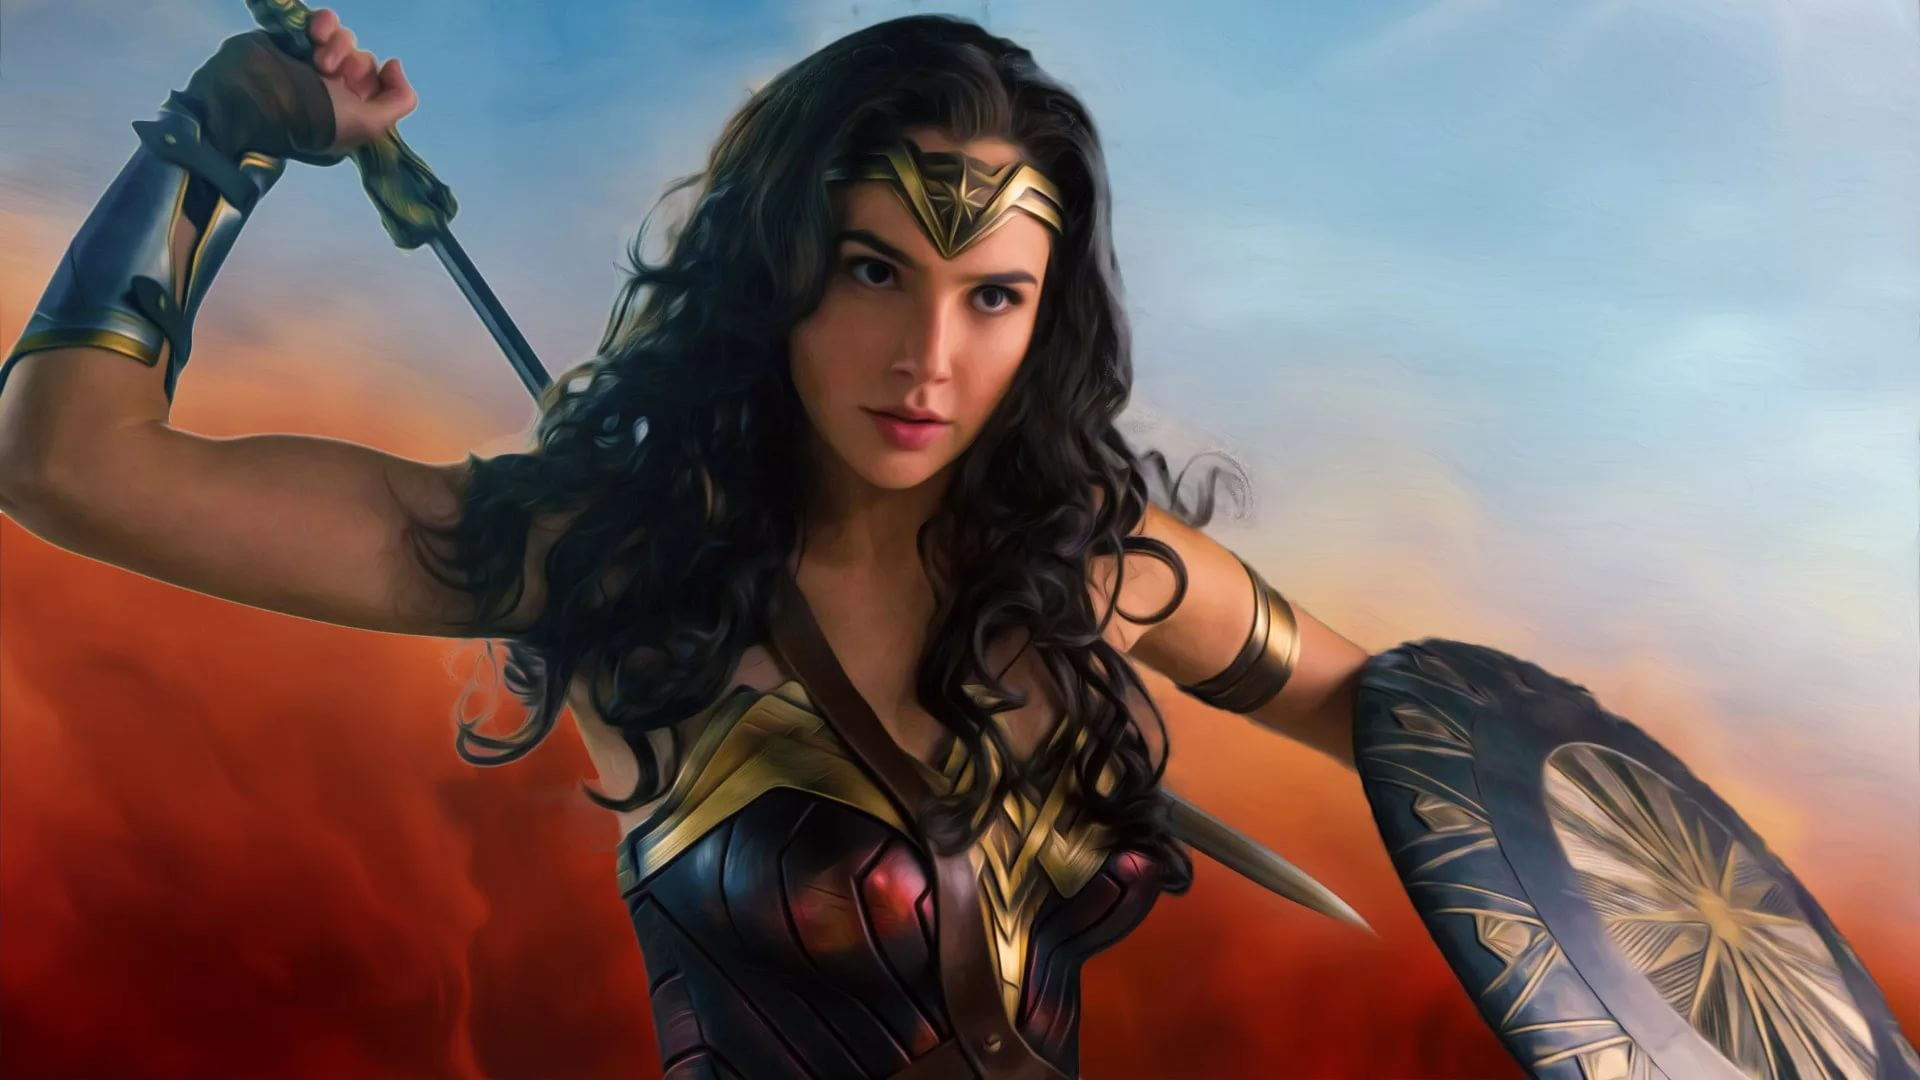 Res: 1920x1080, Wonder Woman Wallpapers 10 - 1920 X 1080